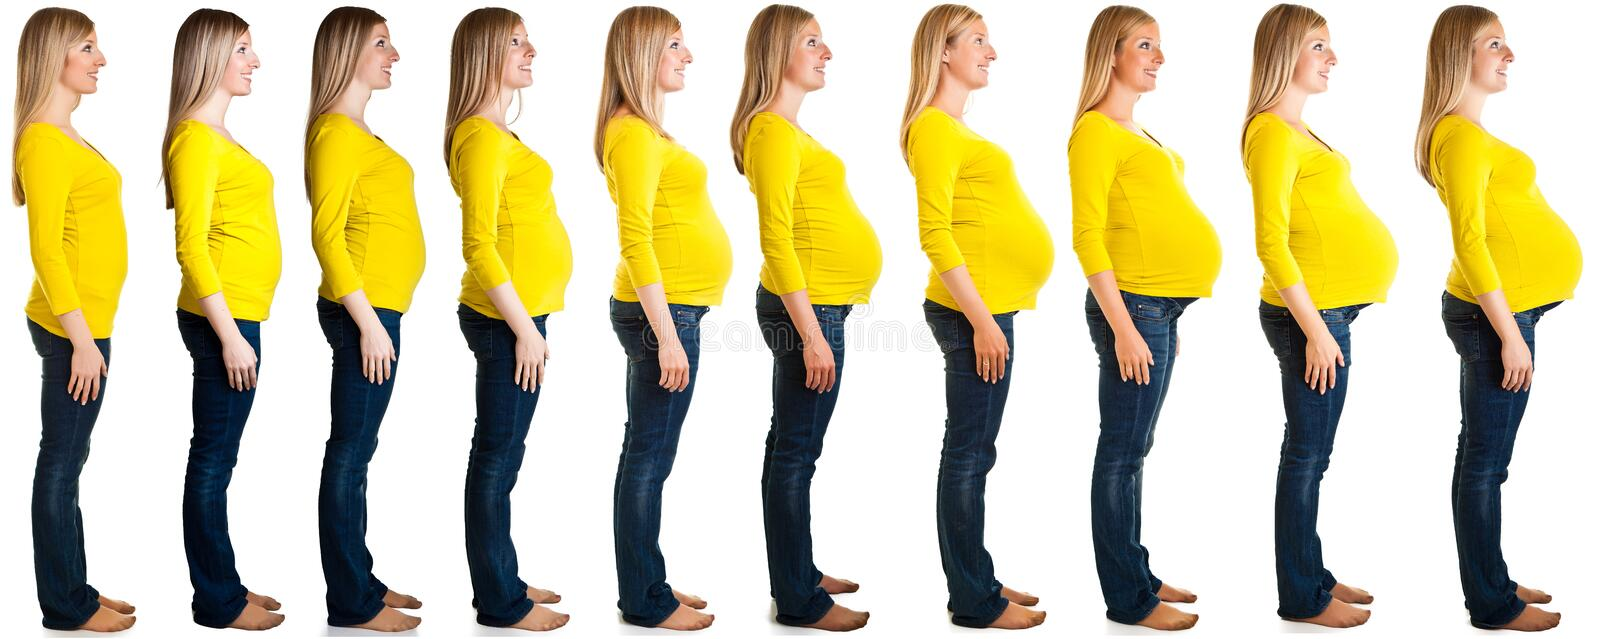 Stages of pregnancy royalty free stock photo